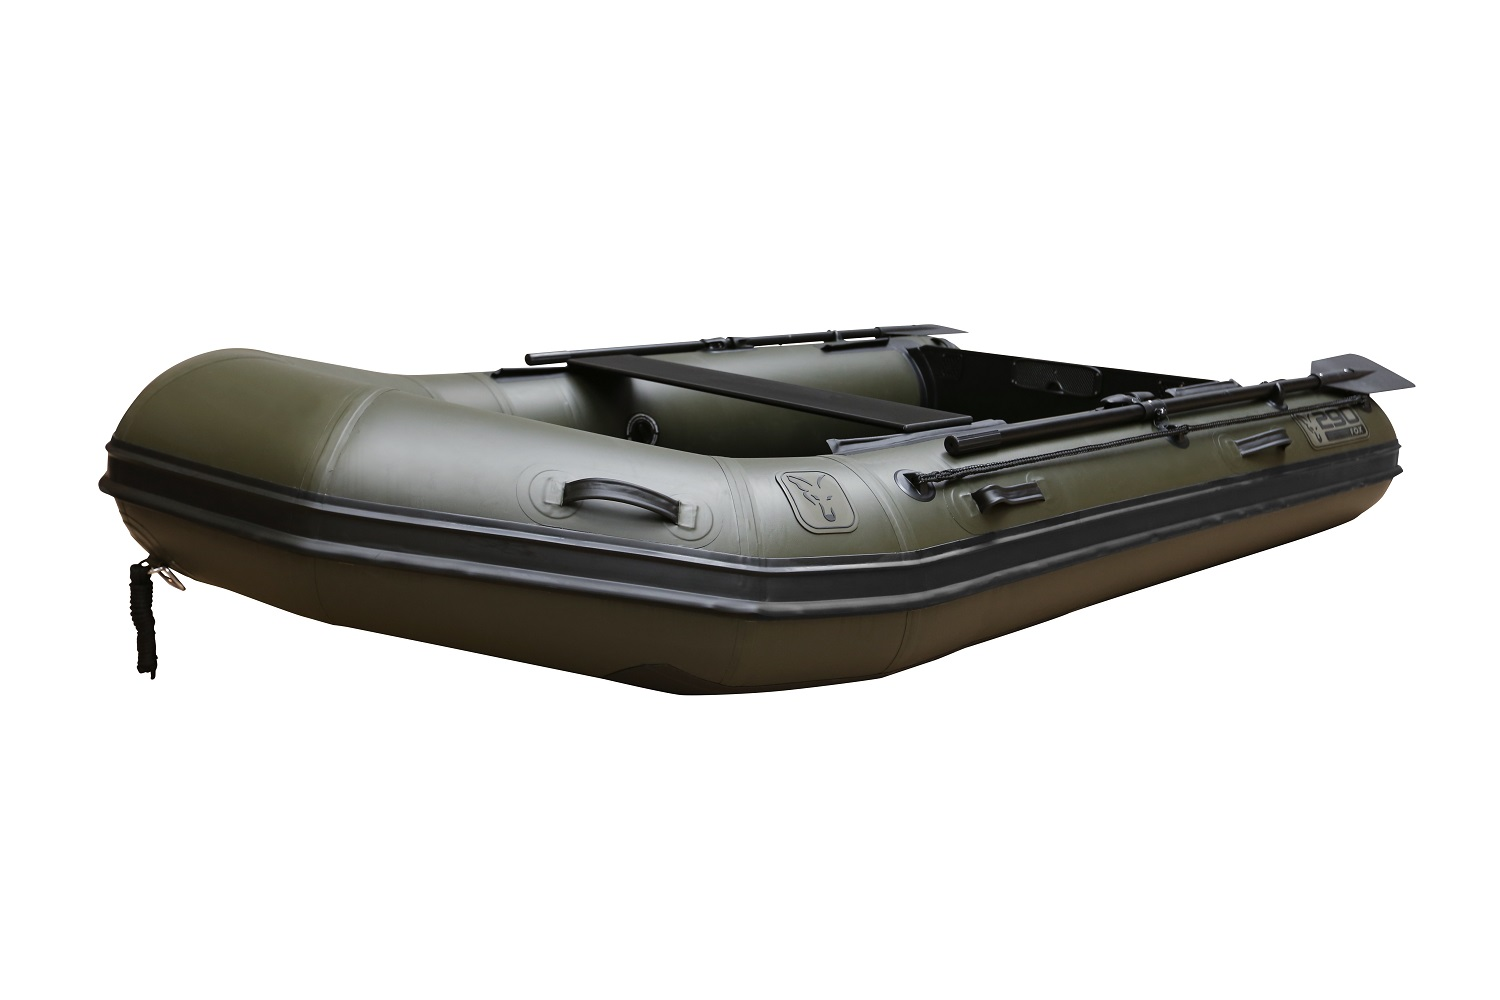 FOX 2.9m Green Inflable Boat - Air Deck Green